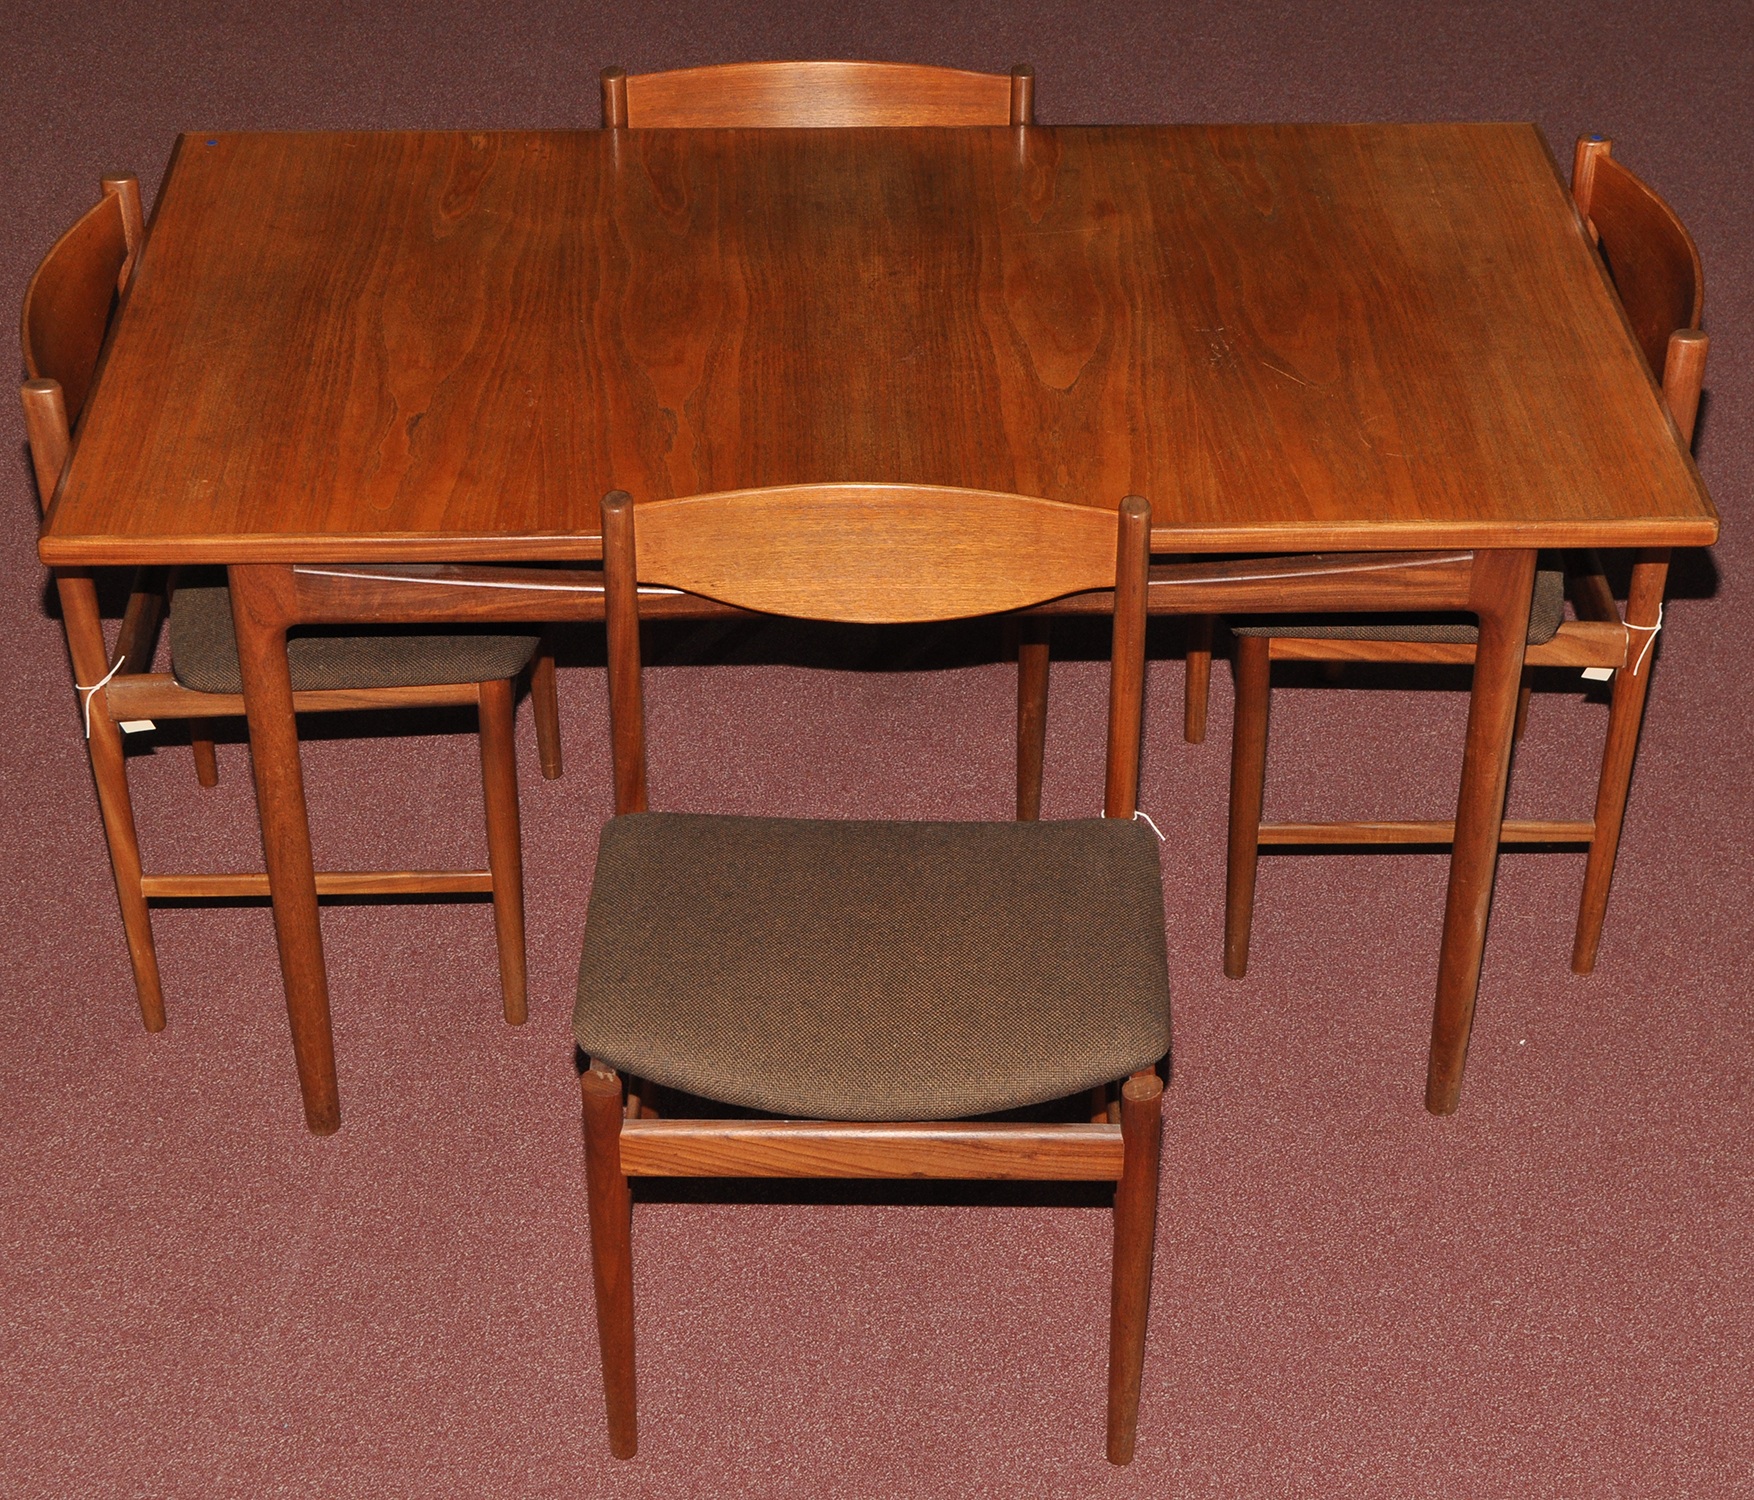 Lot 75 A Teak Extending Dining Table And Four Chairs Probably G